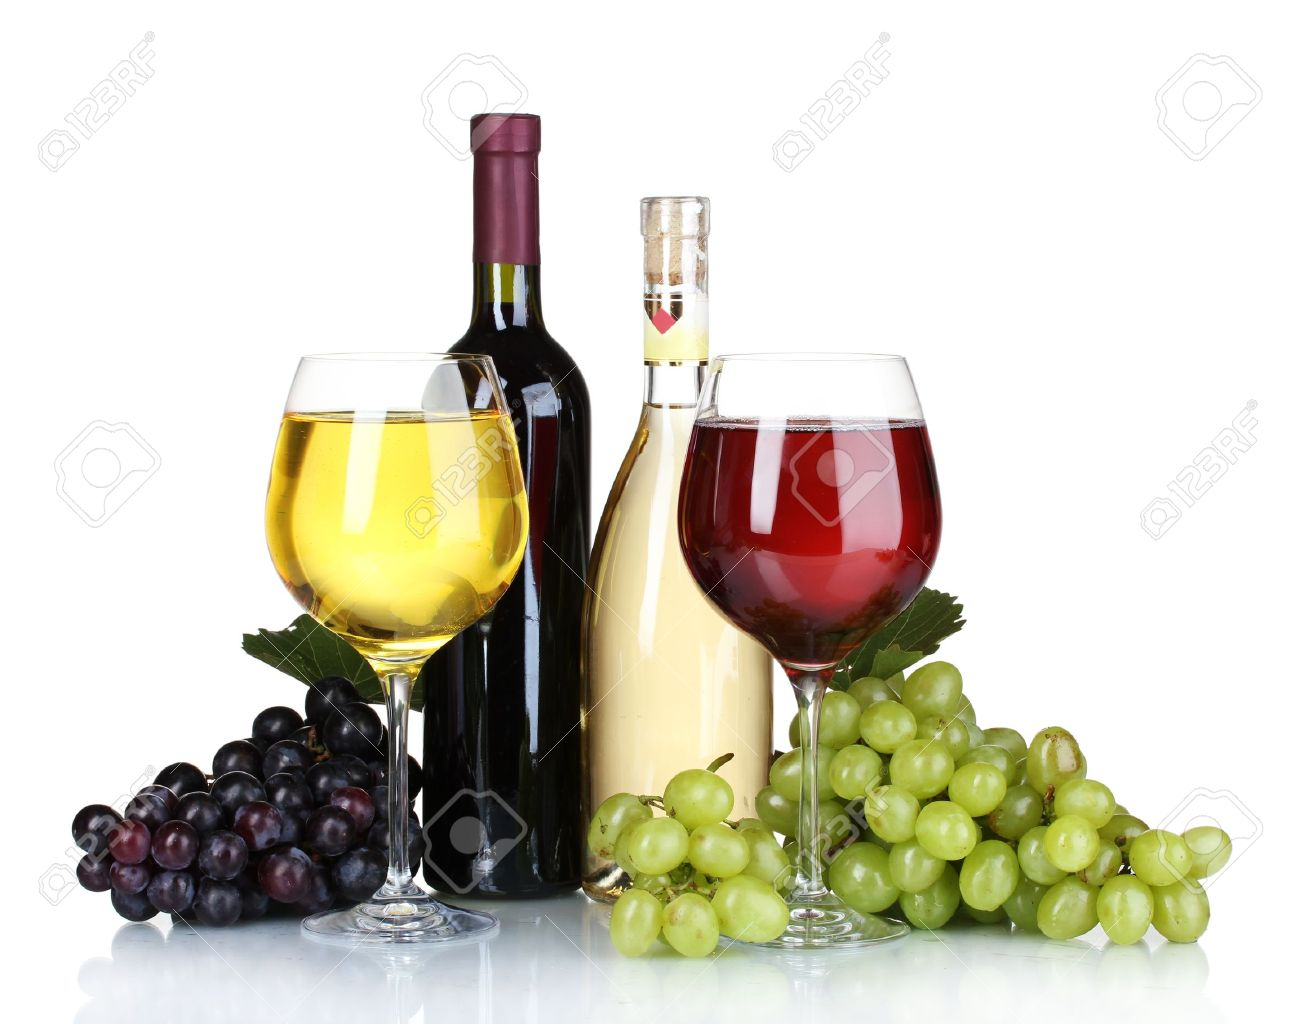 Ripe Grapes Wine Glasses And Bottles Of Wine Isolated On White